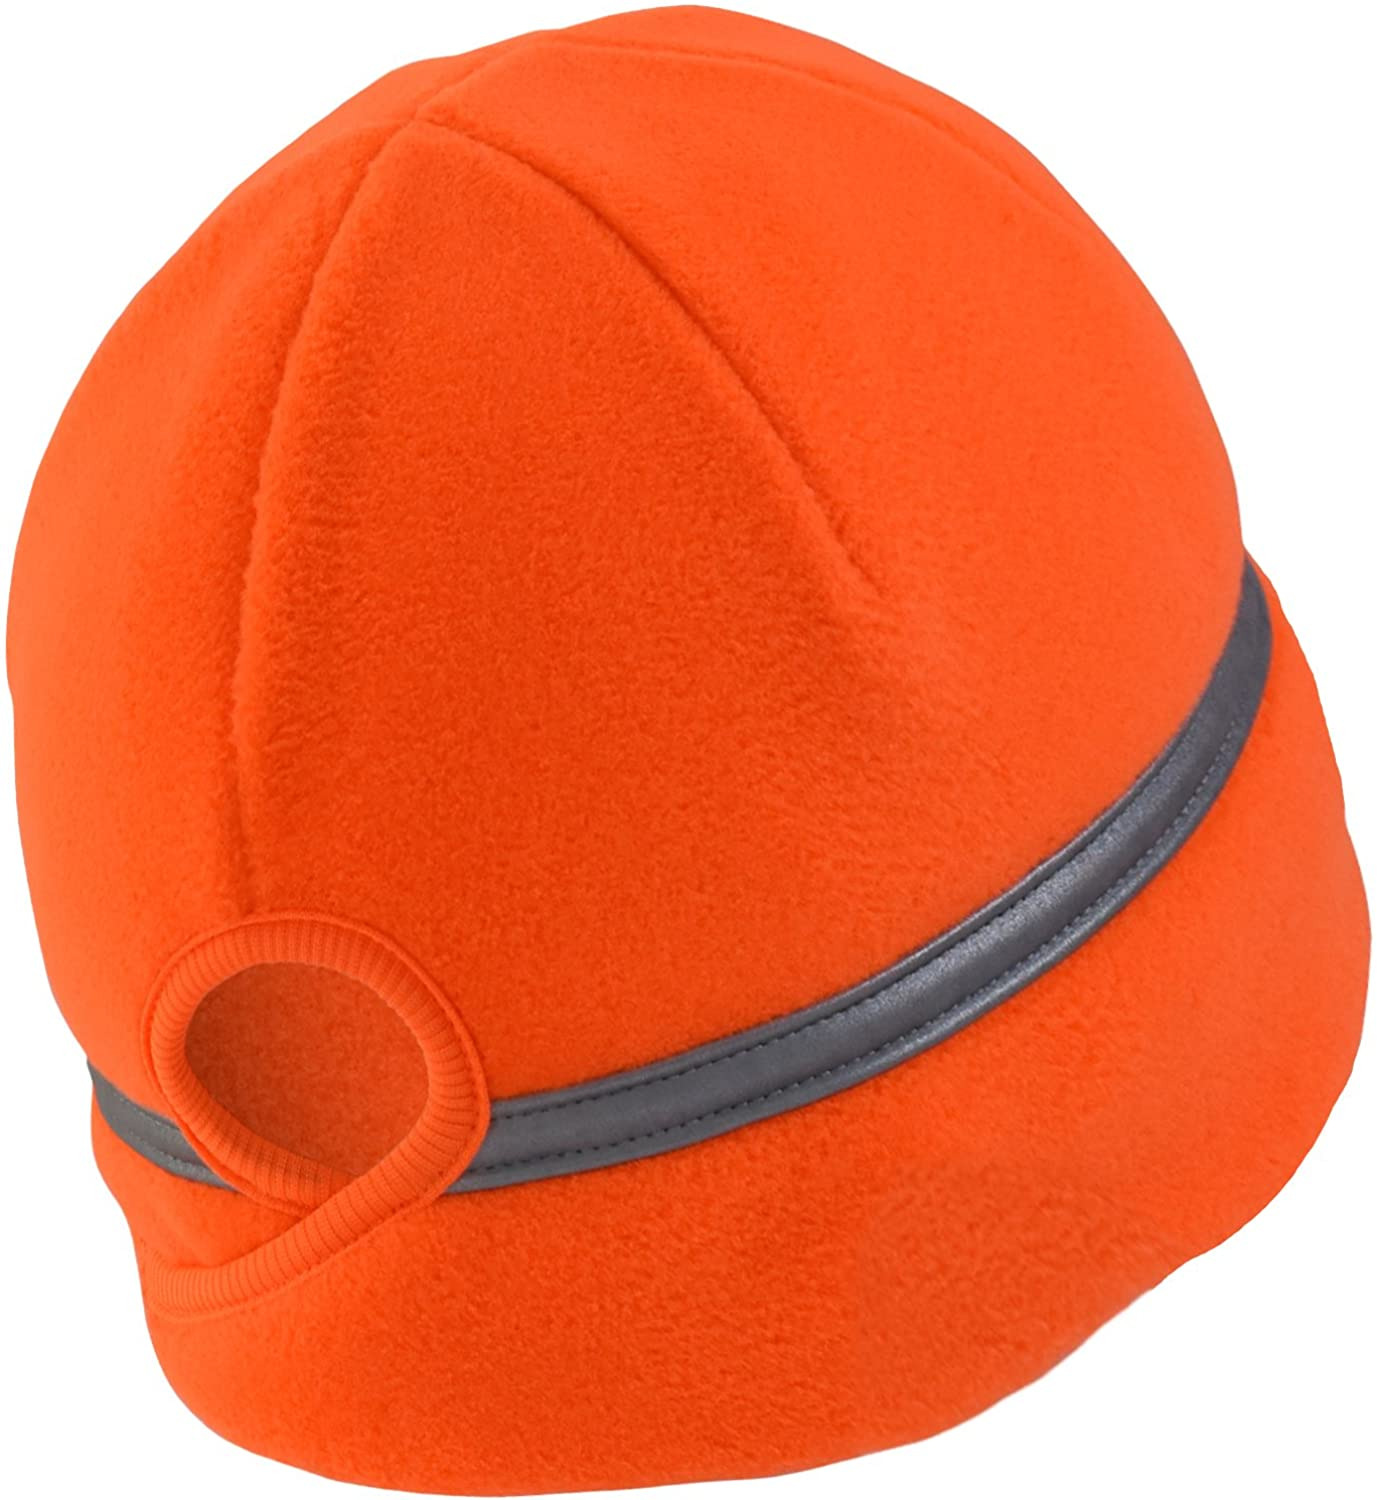 Ponytail safety reflective beanie for women